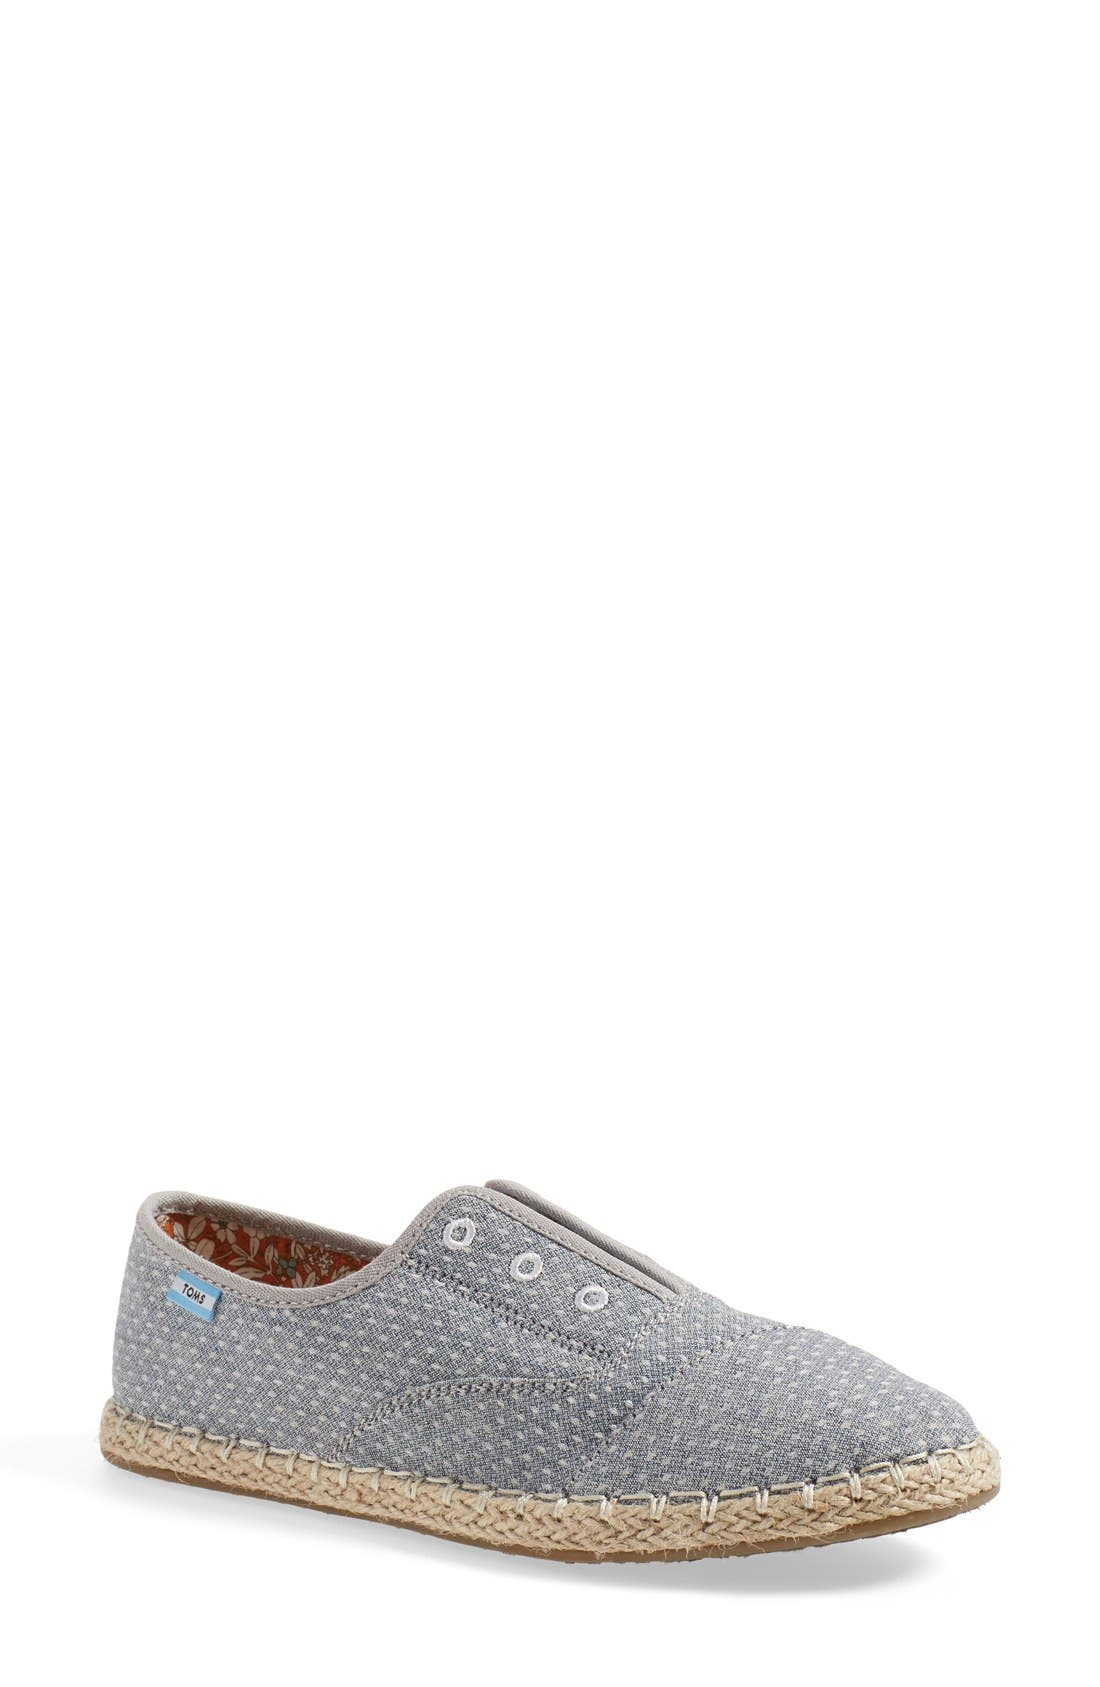 'Palmera' Chambray Dot Slip-On,                         Main,                         color, Chambray Dot Fabric